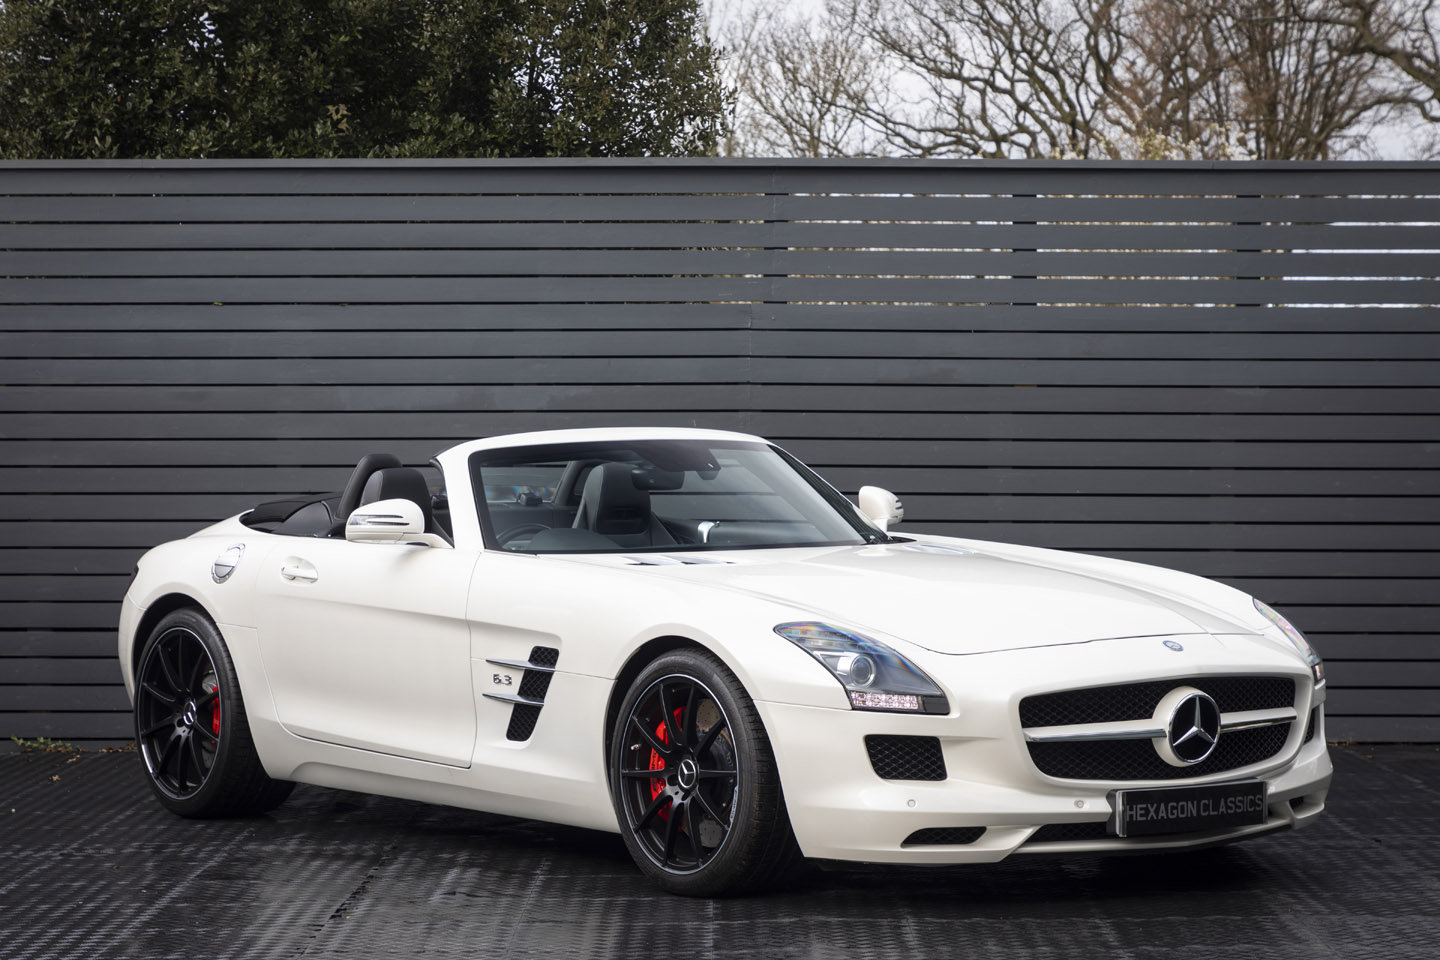 2013 MERCEDES-BENZ SLS AMG ROADSTER ONLY 8000 MILES For Sale (picture 1 of 6)